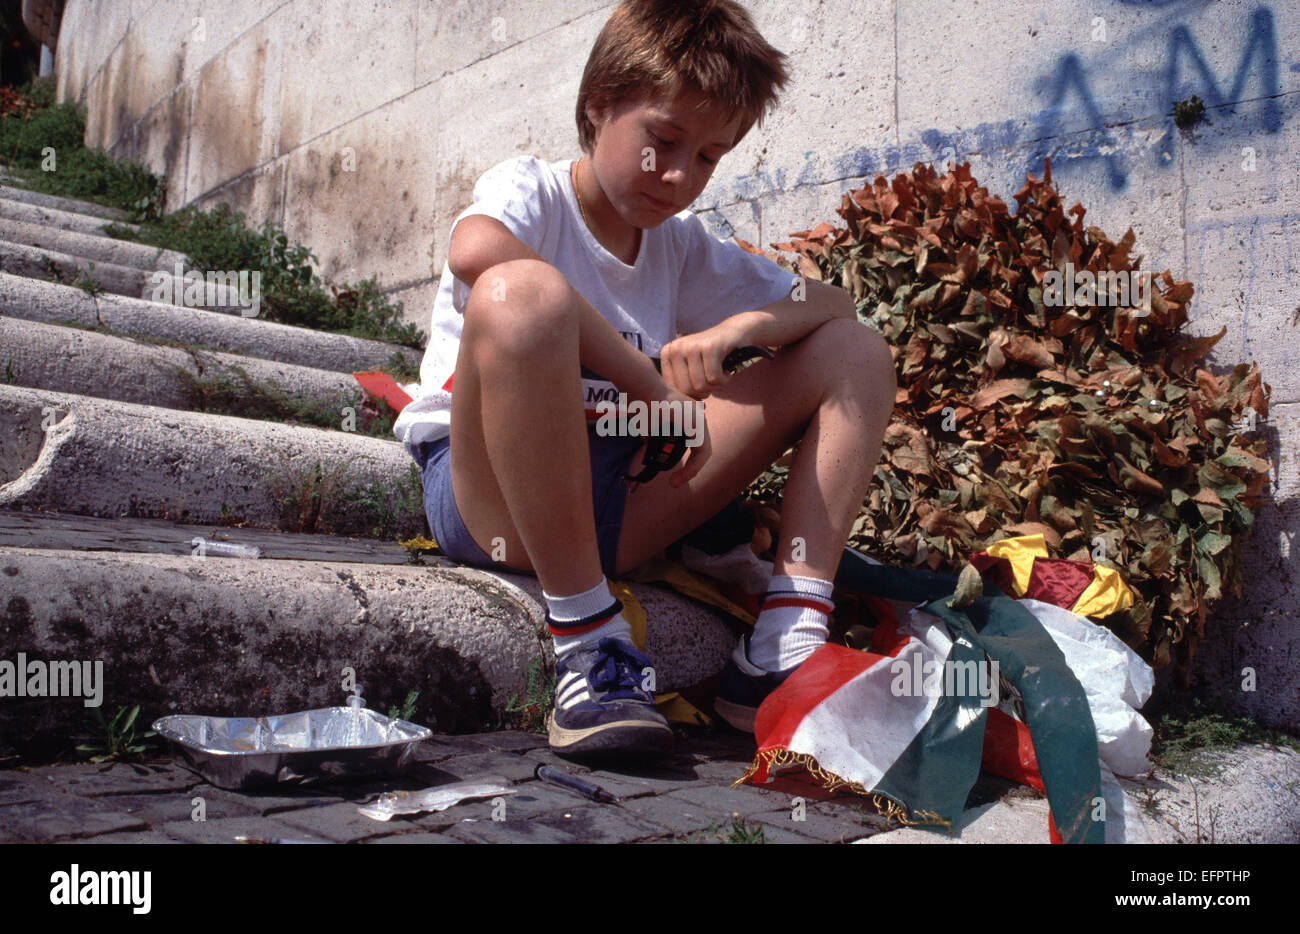 Young boy on the steps by the Tiber river in Rome surrounded by used needles illustrating a drug problem - Stock Image